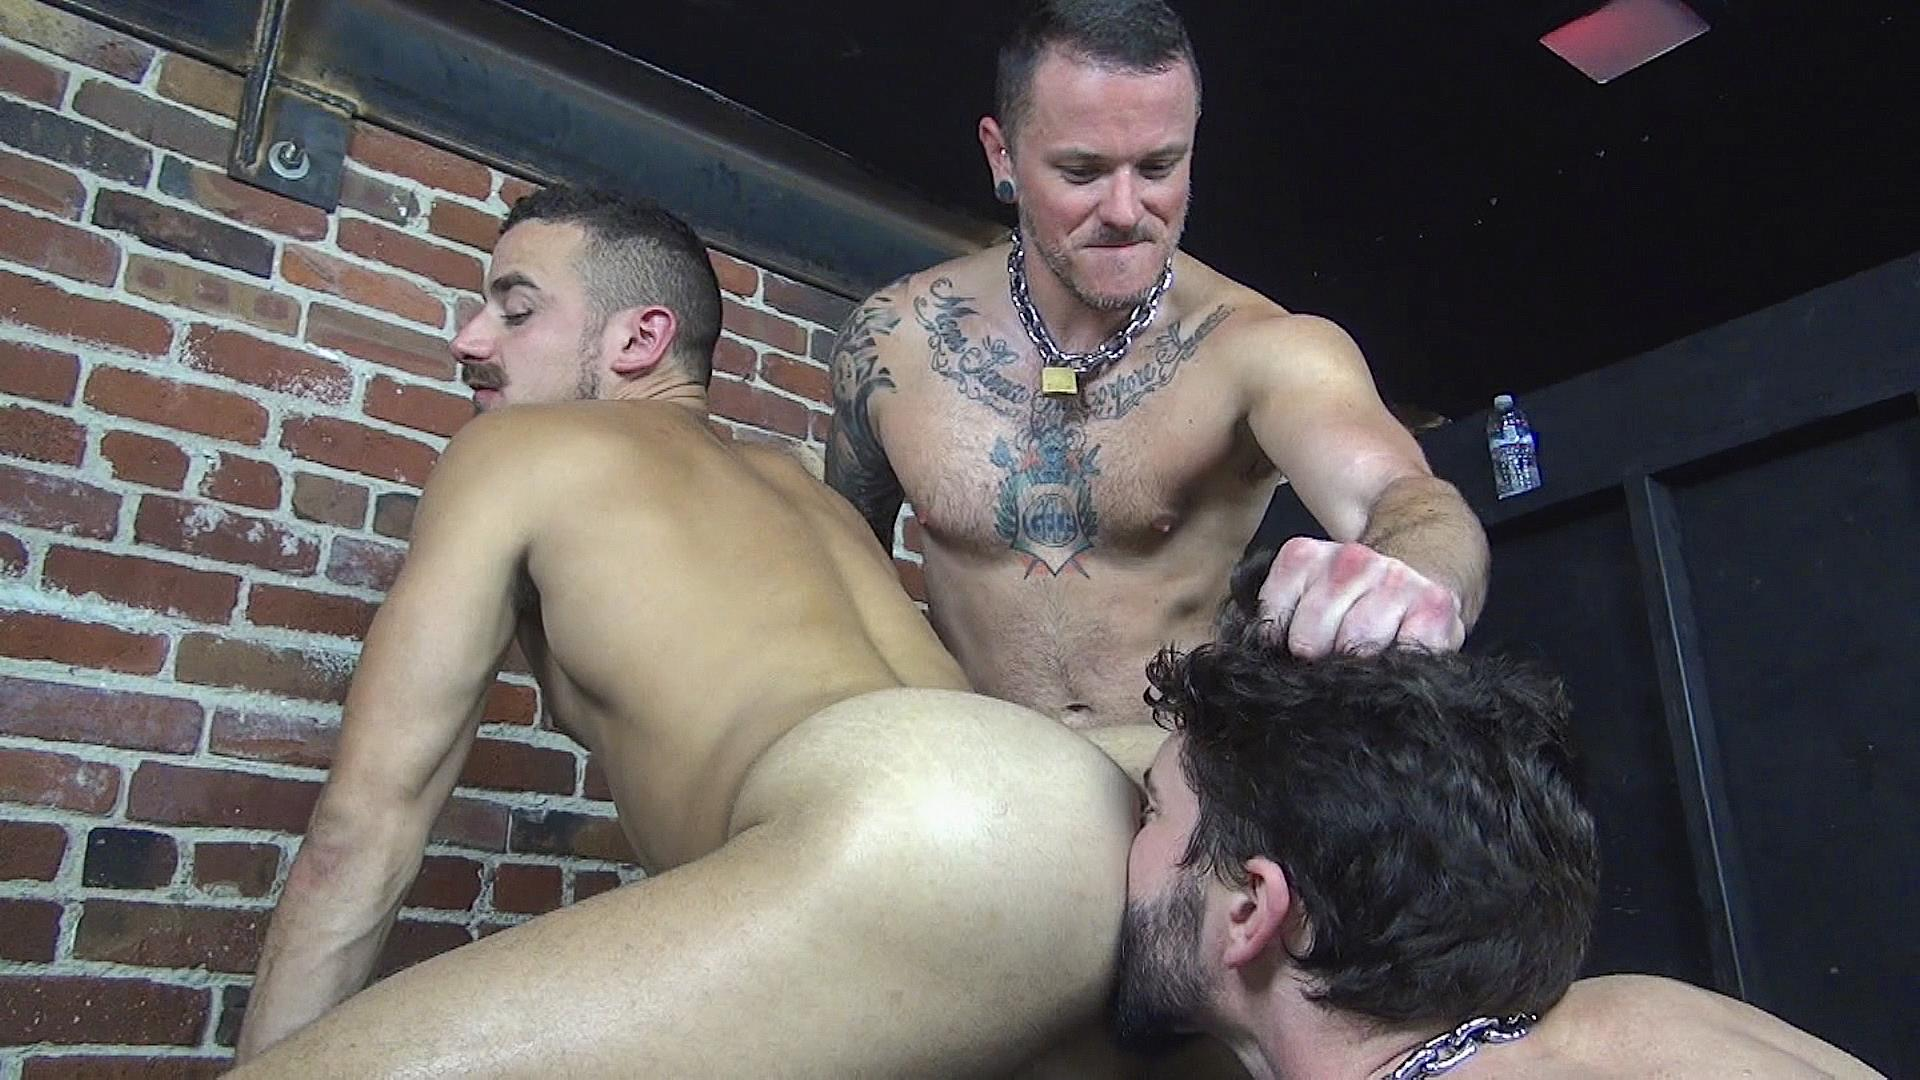 Raw-Fuck-Club-Max-Cameron-and-Jackson-Fillmore-and-Leon-Fox-Bareback-Double-Penetration-Amateur-Gay-Porn-08 Getting Double Penetrated Bareback By A Big Uncut Cock